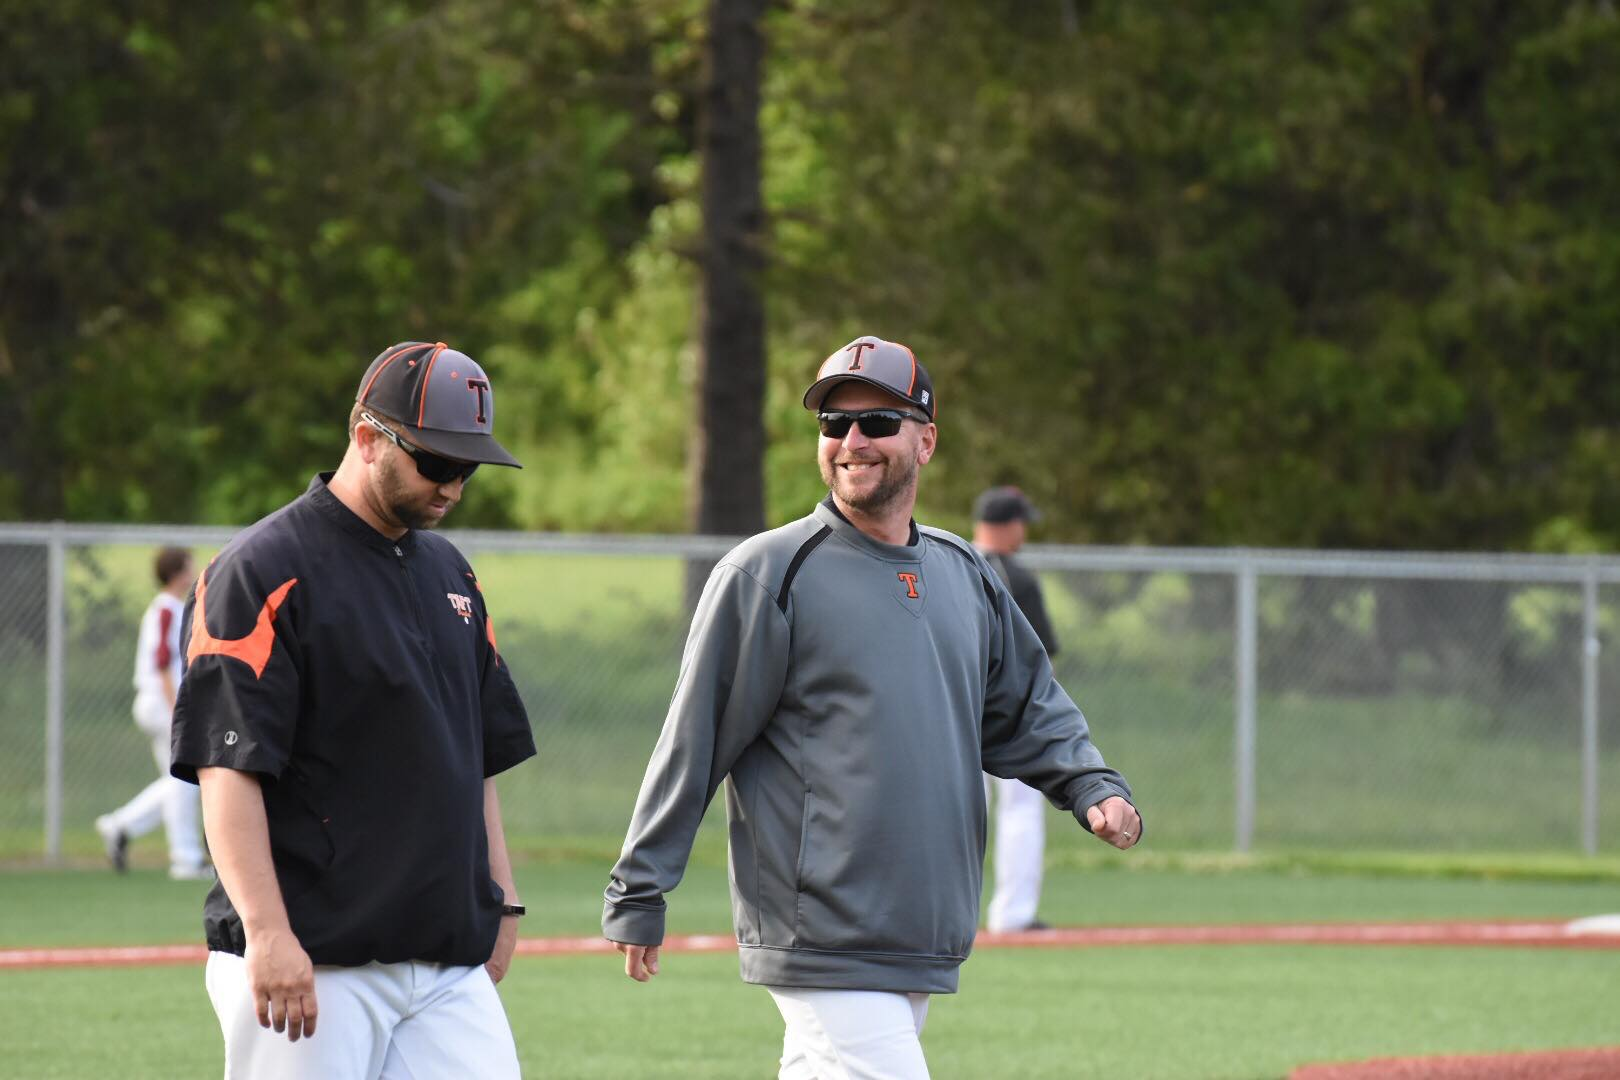 Coaches Matt Hilgers and Jason King